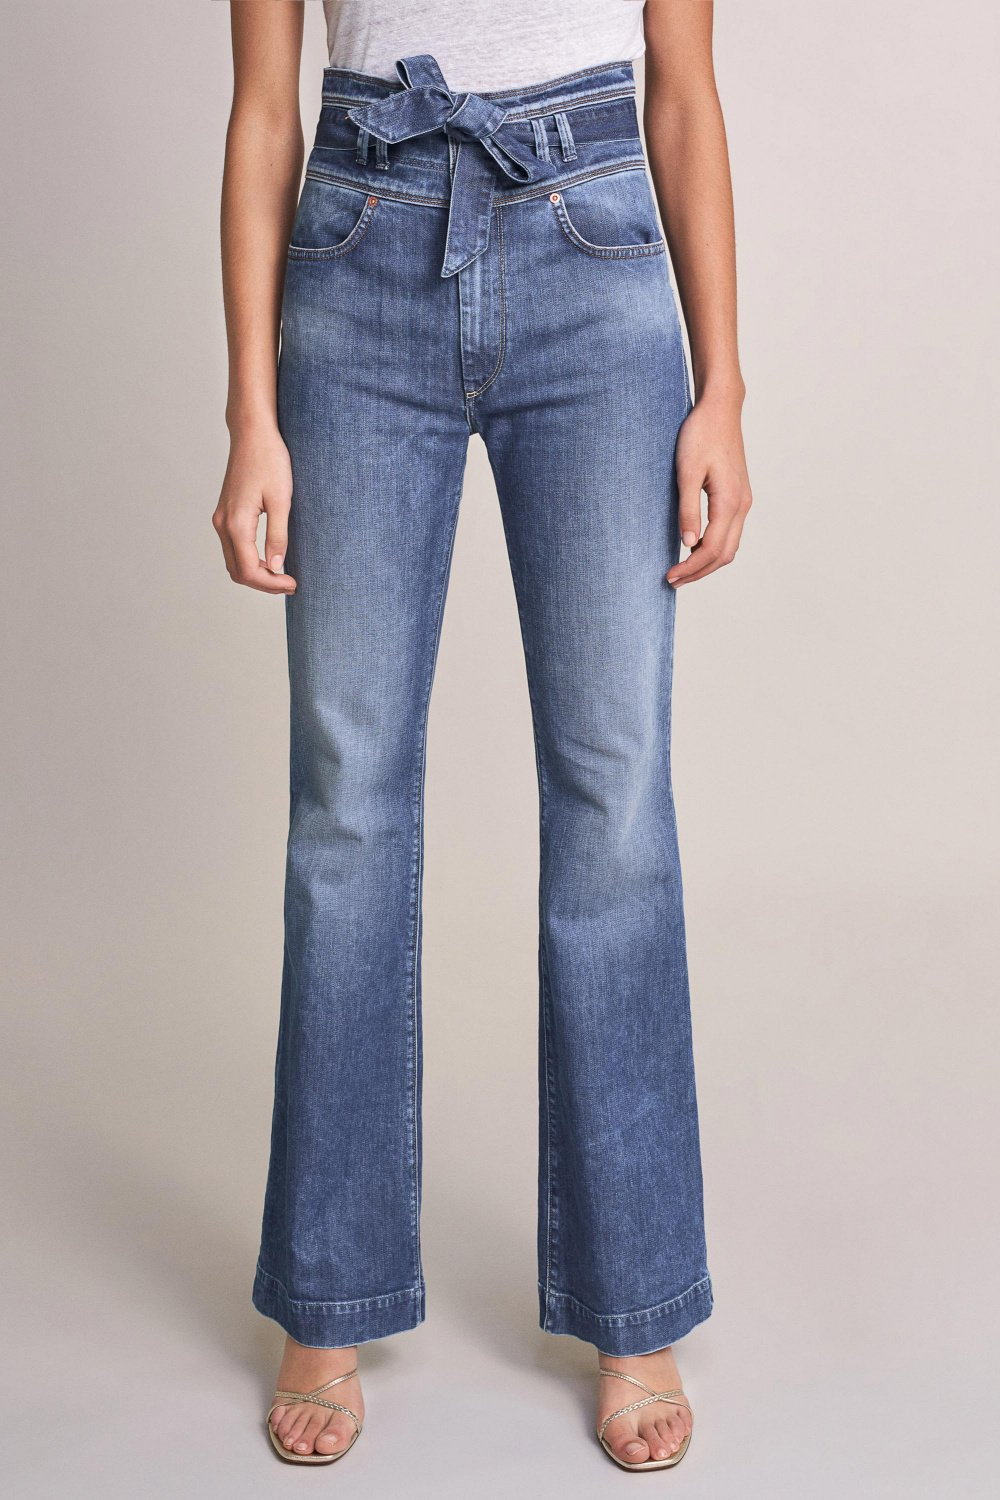 Push Up Wonder capri high-waisted jeans with belt - Salsa